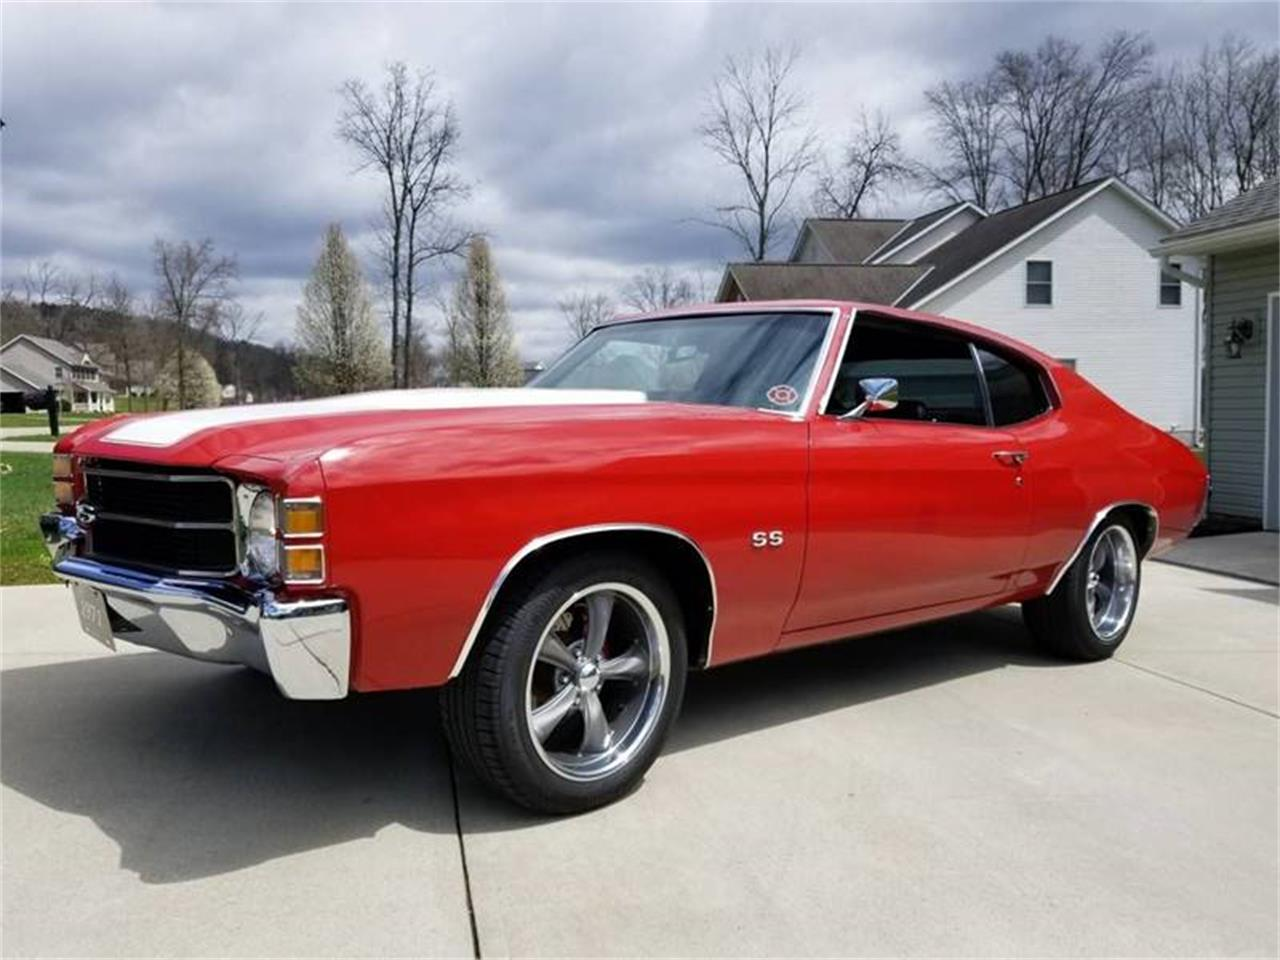 1971 Chevrolet Chevelle for sale in Long Island, NY – photo 2